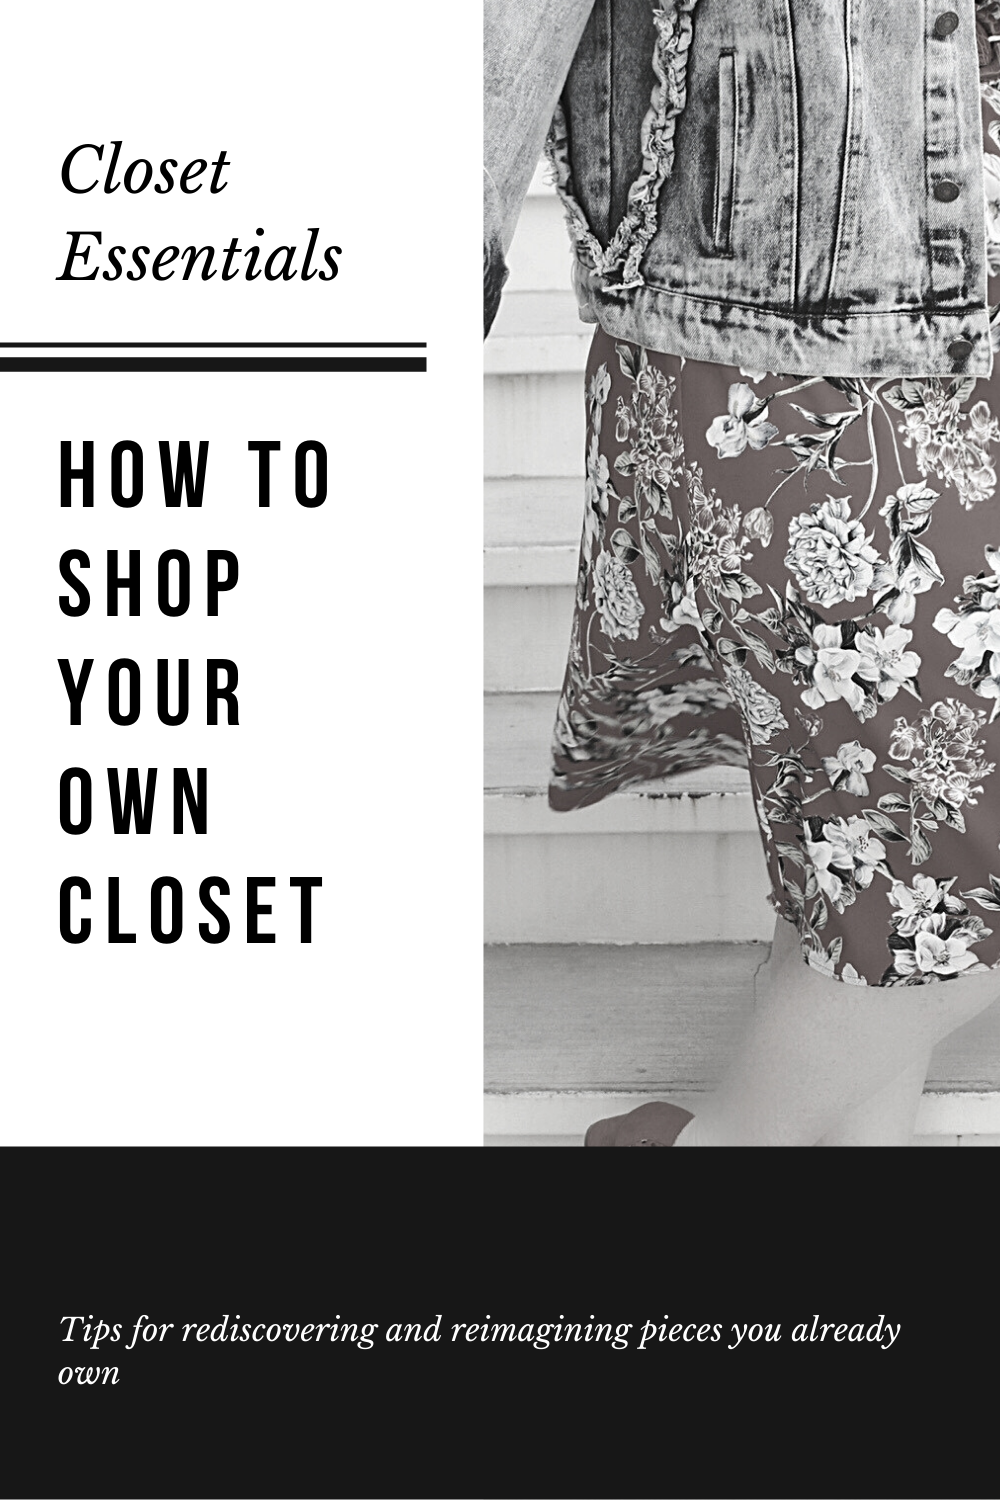 How to Shop your own closet